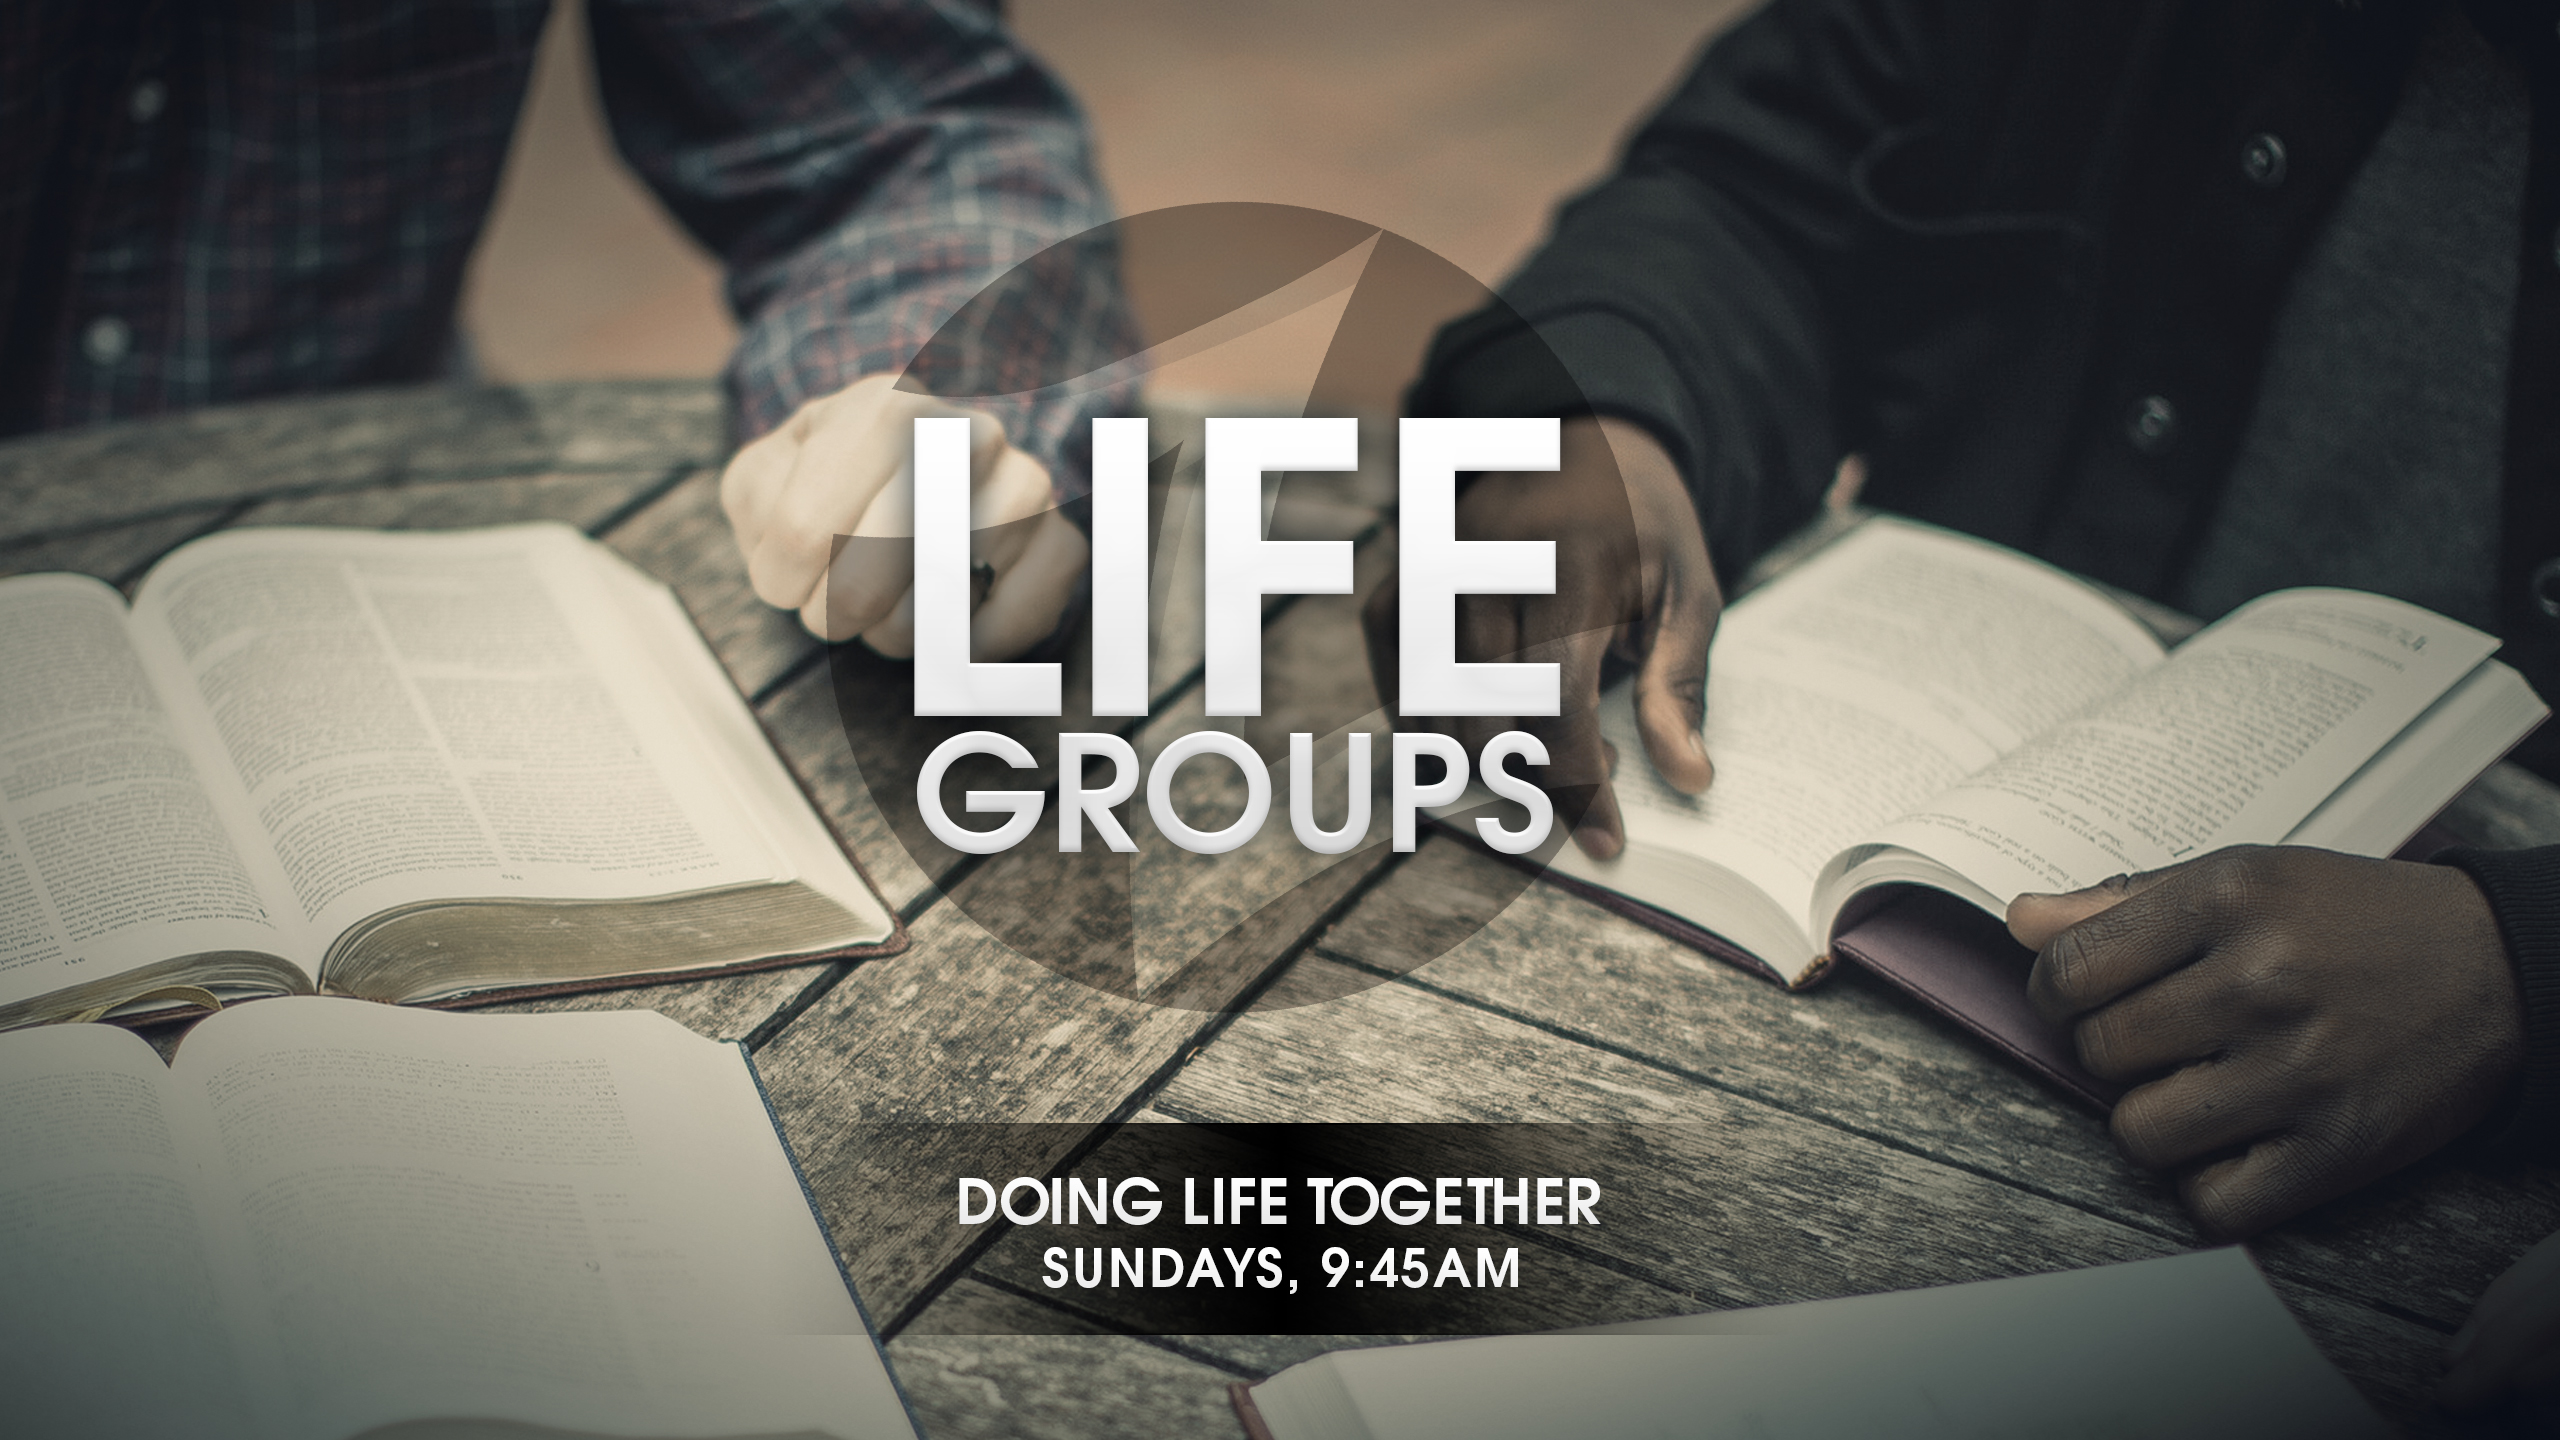 Lifegroups-Dec2017 image